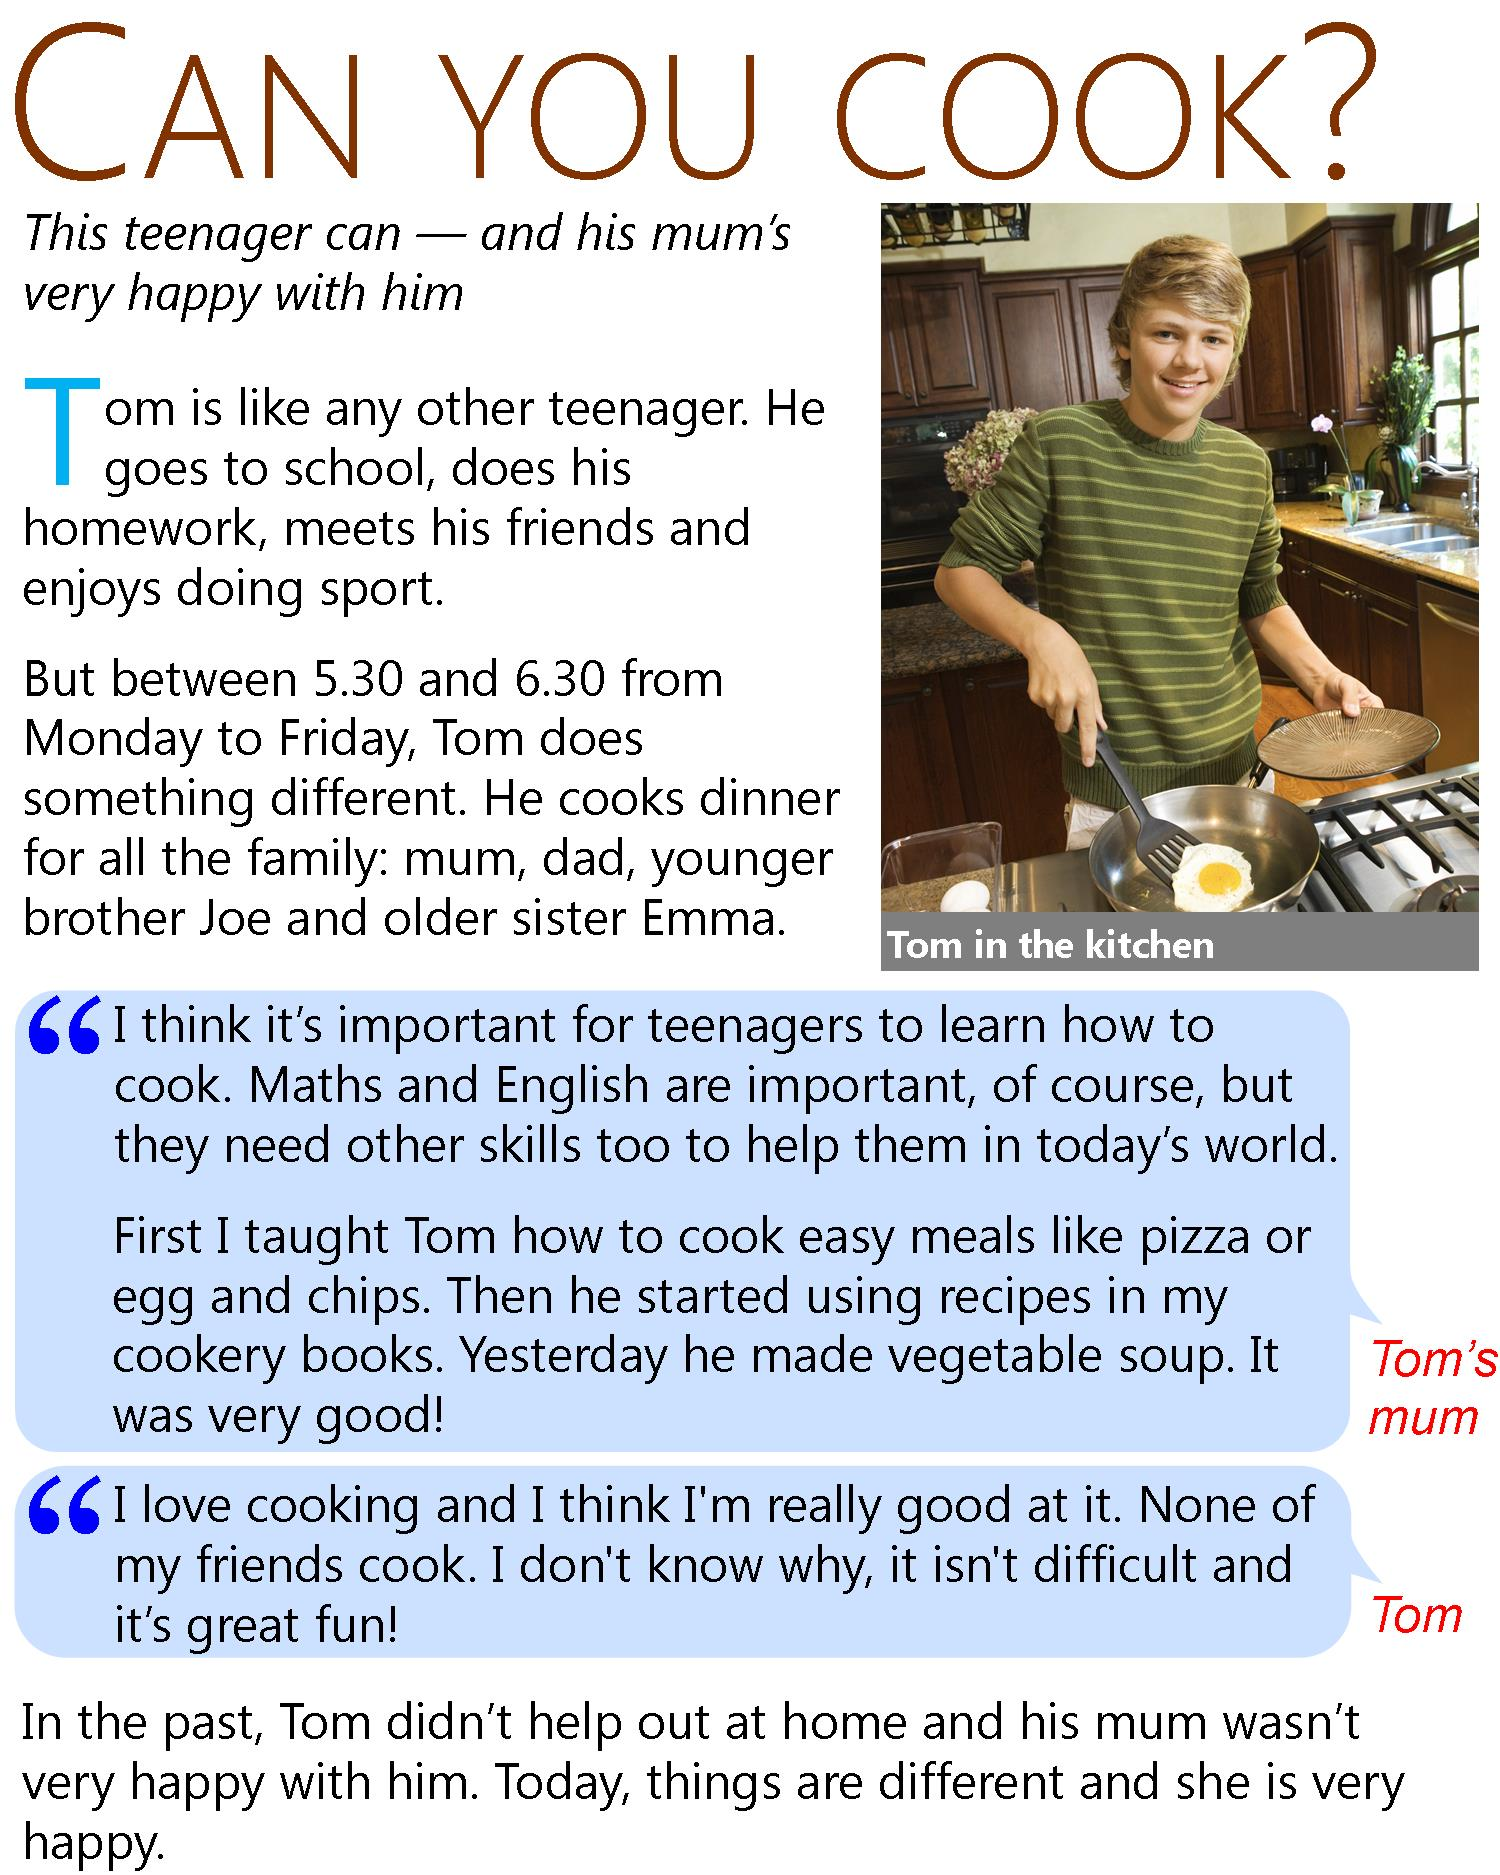 Can You Cook Learnenglish Teens